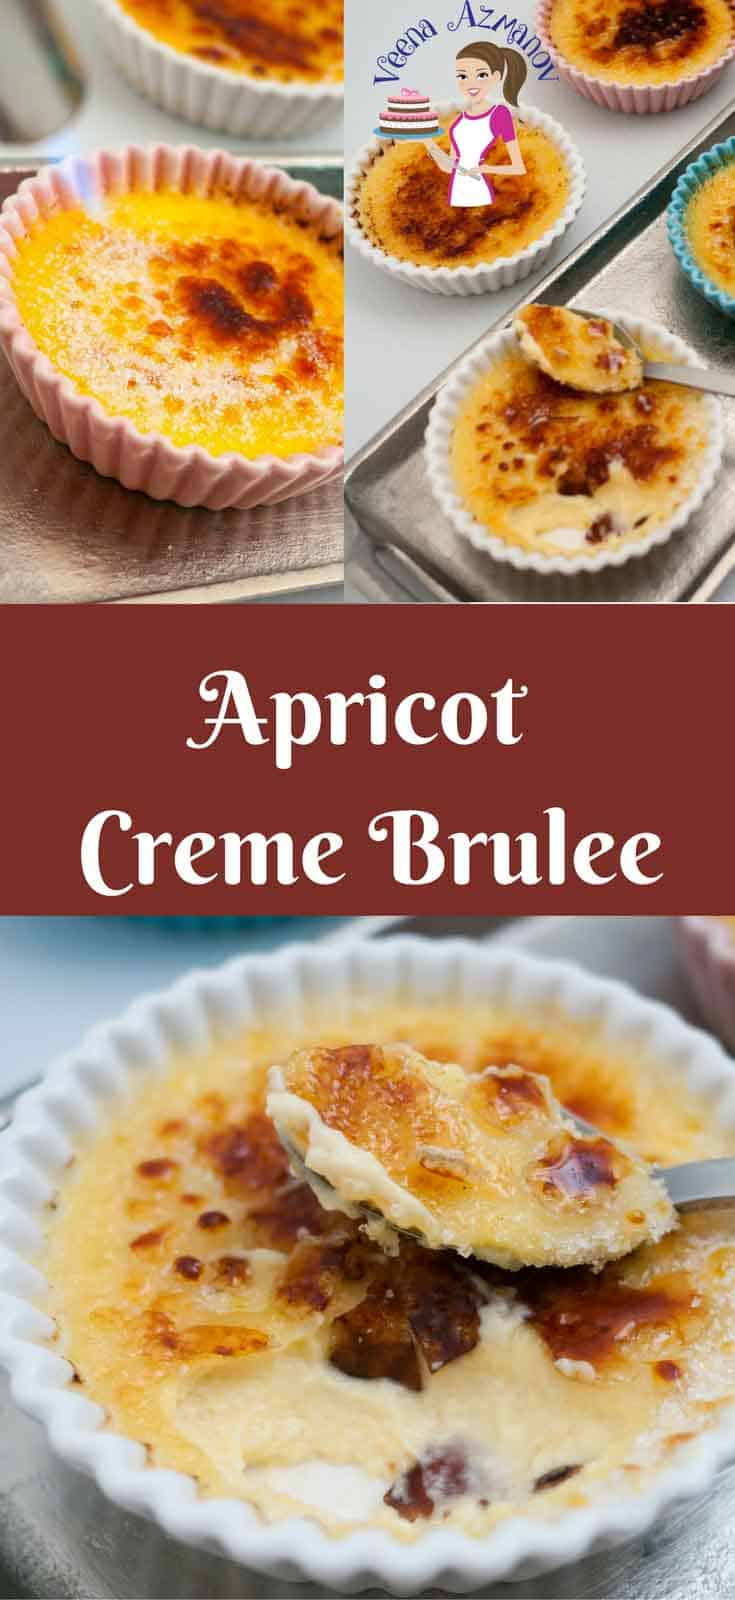 A Pinterest Optimized image for Apricot Creme Brulee - a twist on the classic Creme Brûlée recipe featuring individual servings of creamy custard with a blowtorch in the process of burning the sugar on top for the caramel glass.